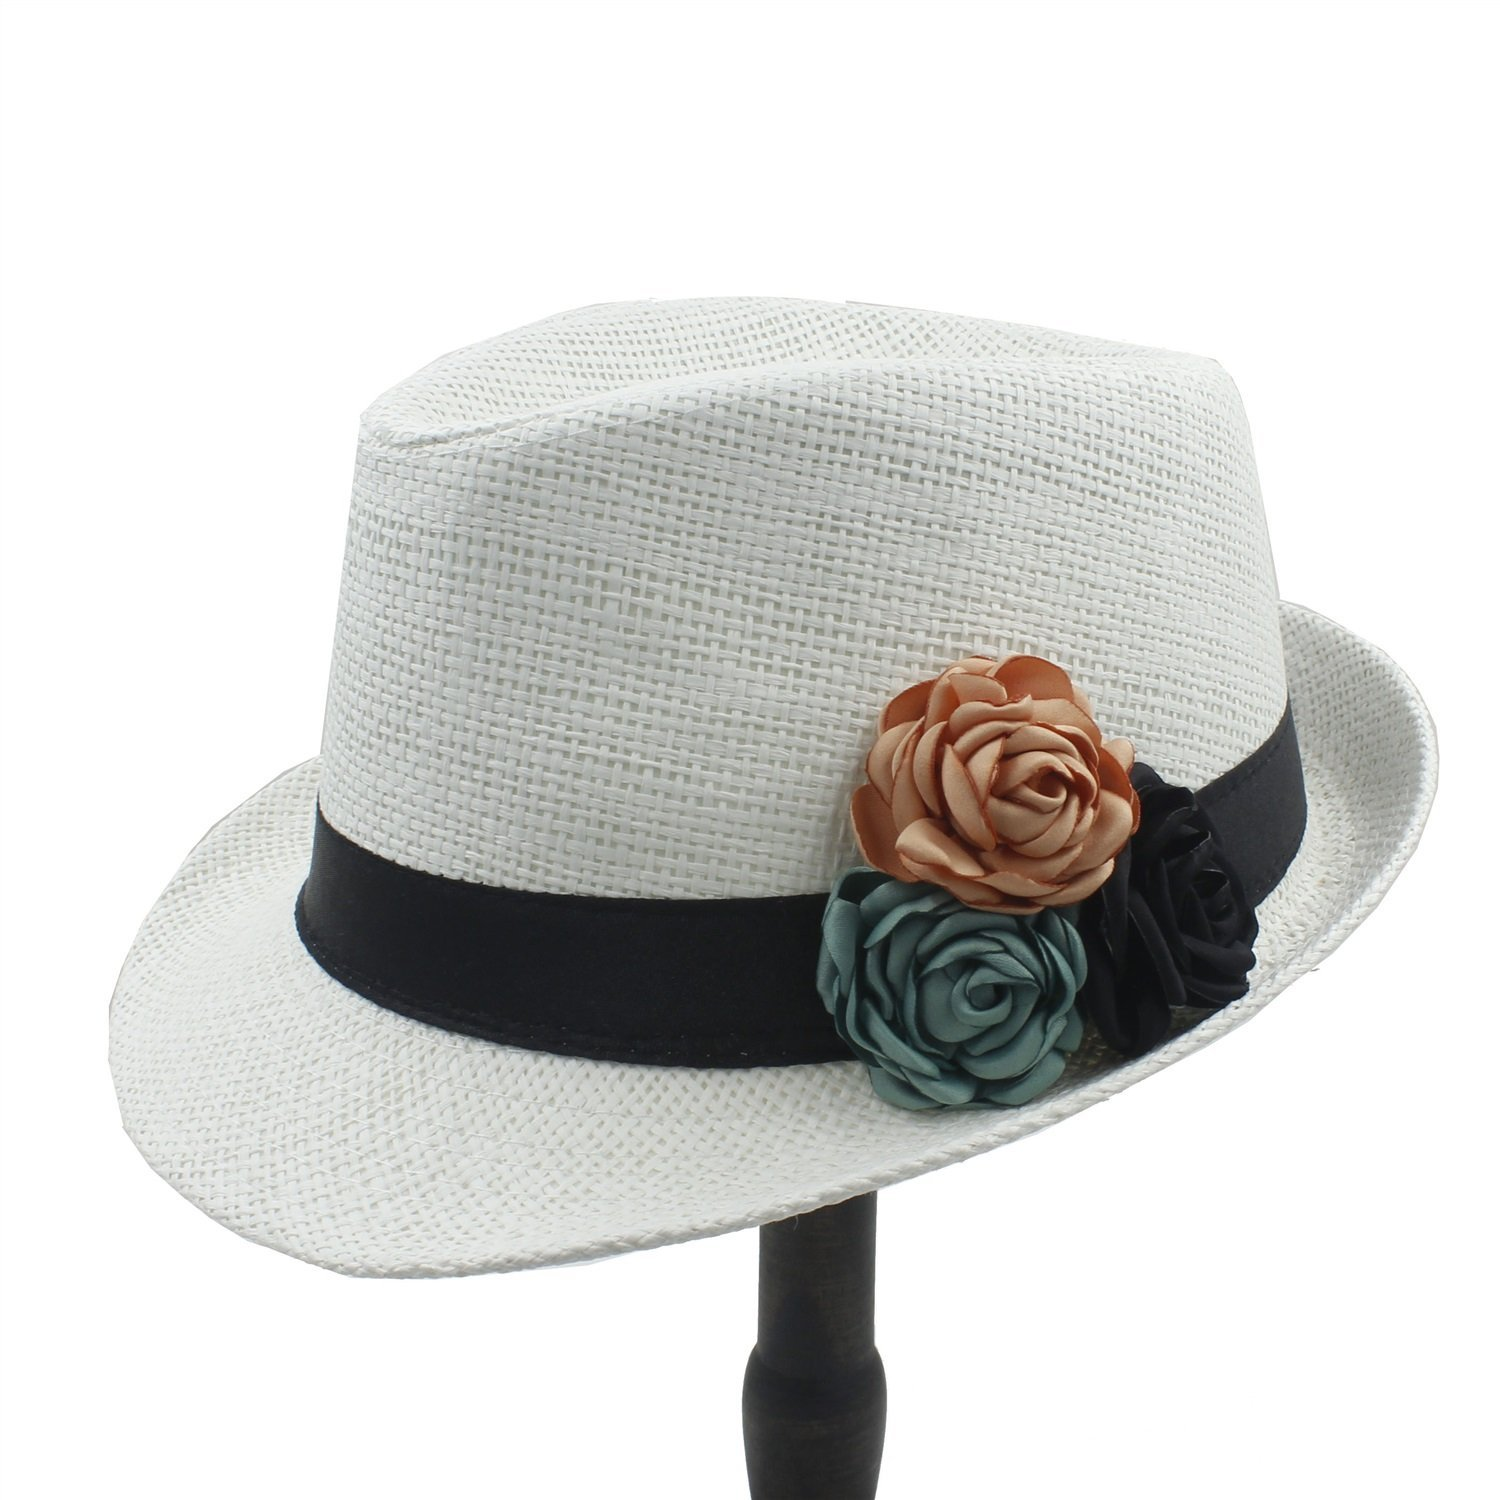 b2bcf9d0 Get Quotations · Shufang-hats, store, Straw Sun hat,Fashion Toquilla Straw  Women Boater Beach